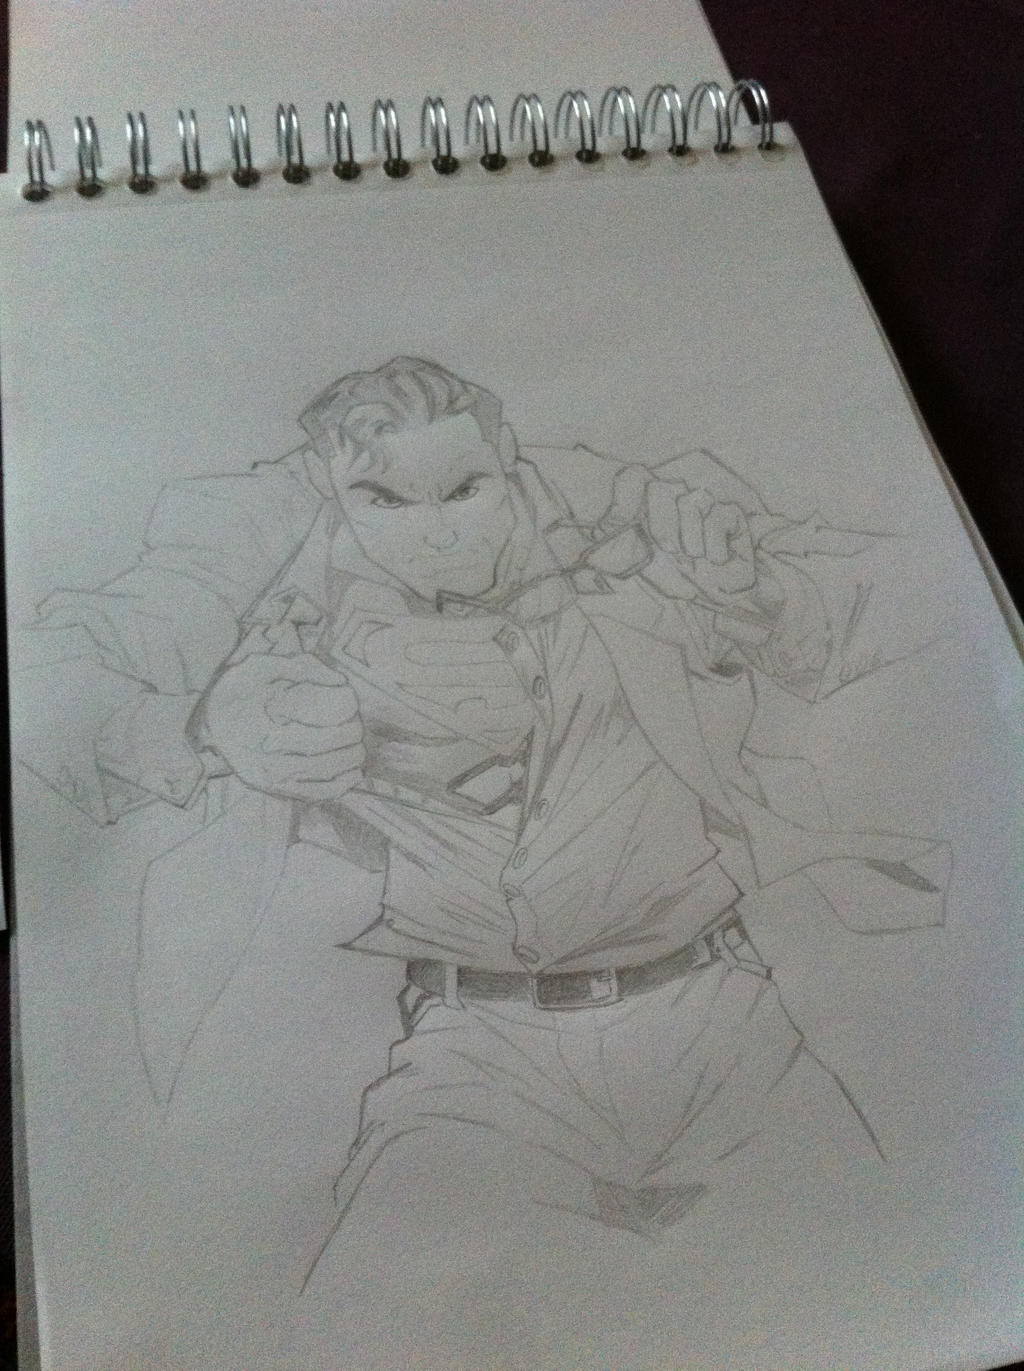 It is an image of Rare Clark Kent Drawing